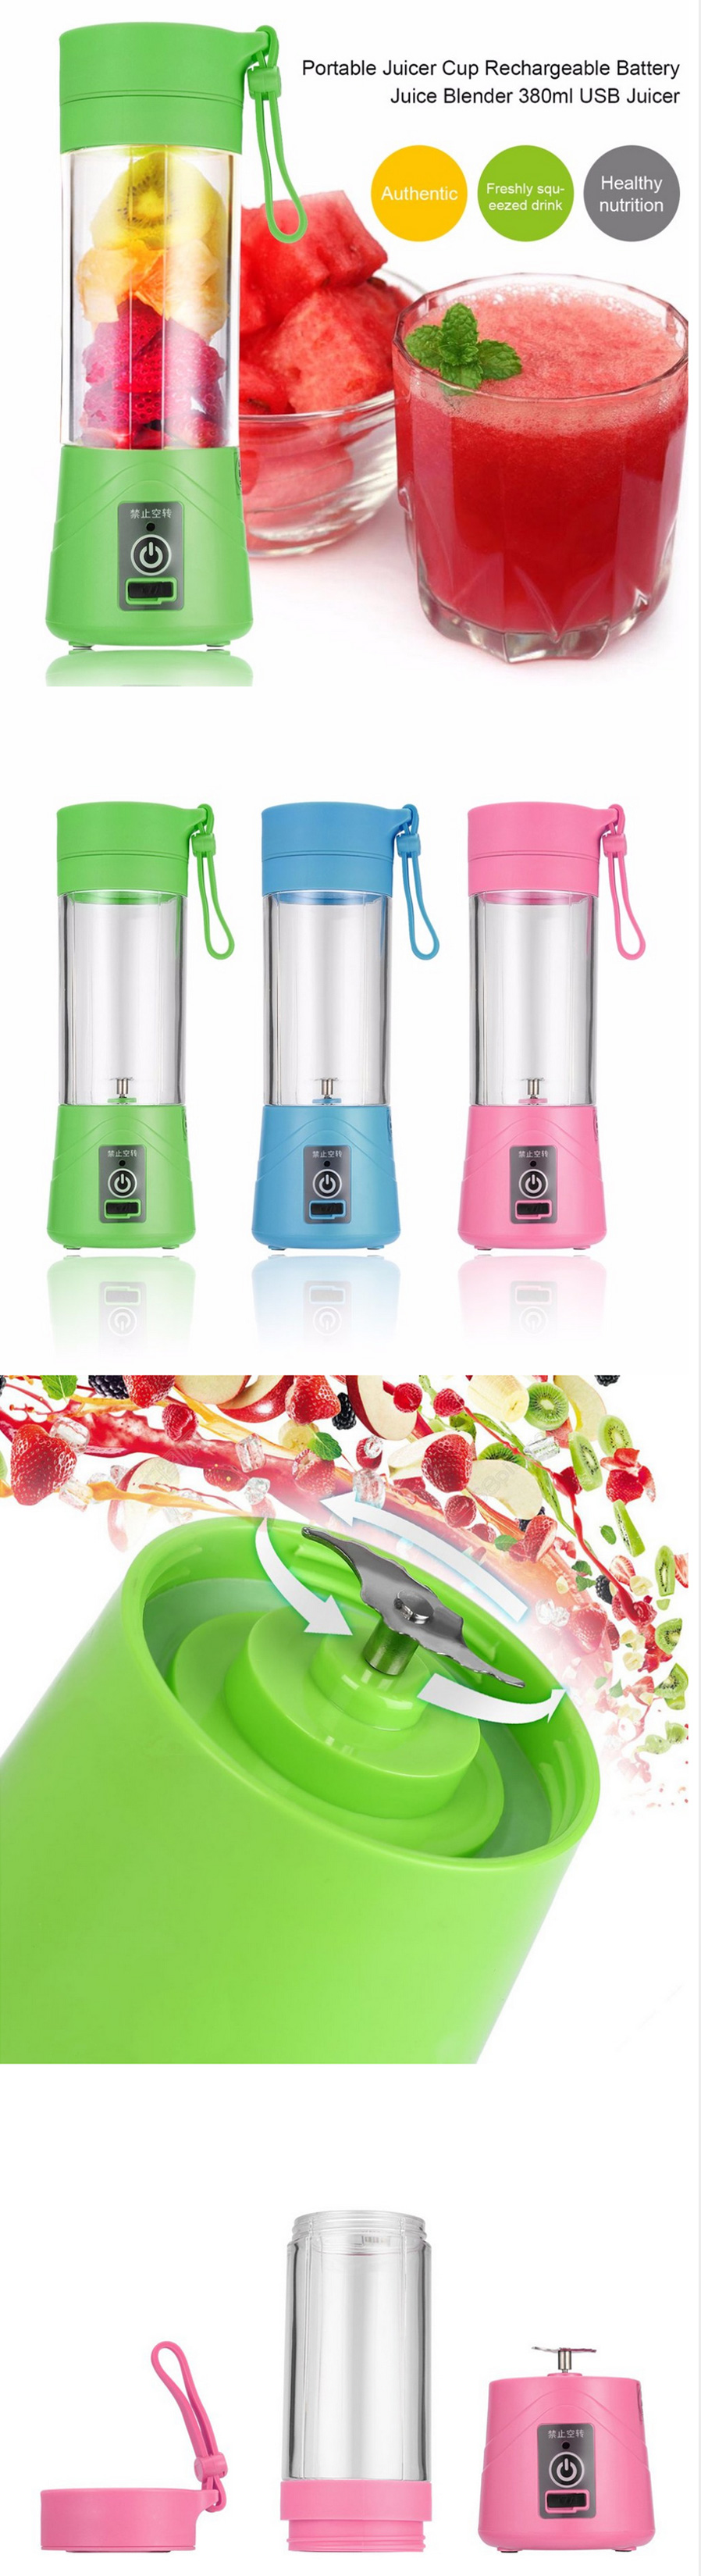 380ml Portable Usb Rechargeable Juicer Cup Green Free Shipping Battery Color Blue Pink Material Plastic Volume Moter Model Dc36 Motor Rotation No Load22000rpmload 15000rpm Working Current10 12a